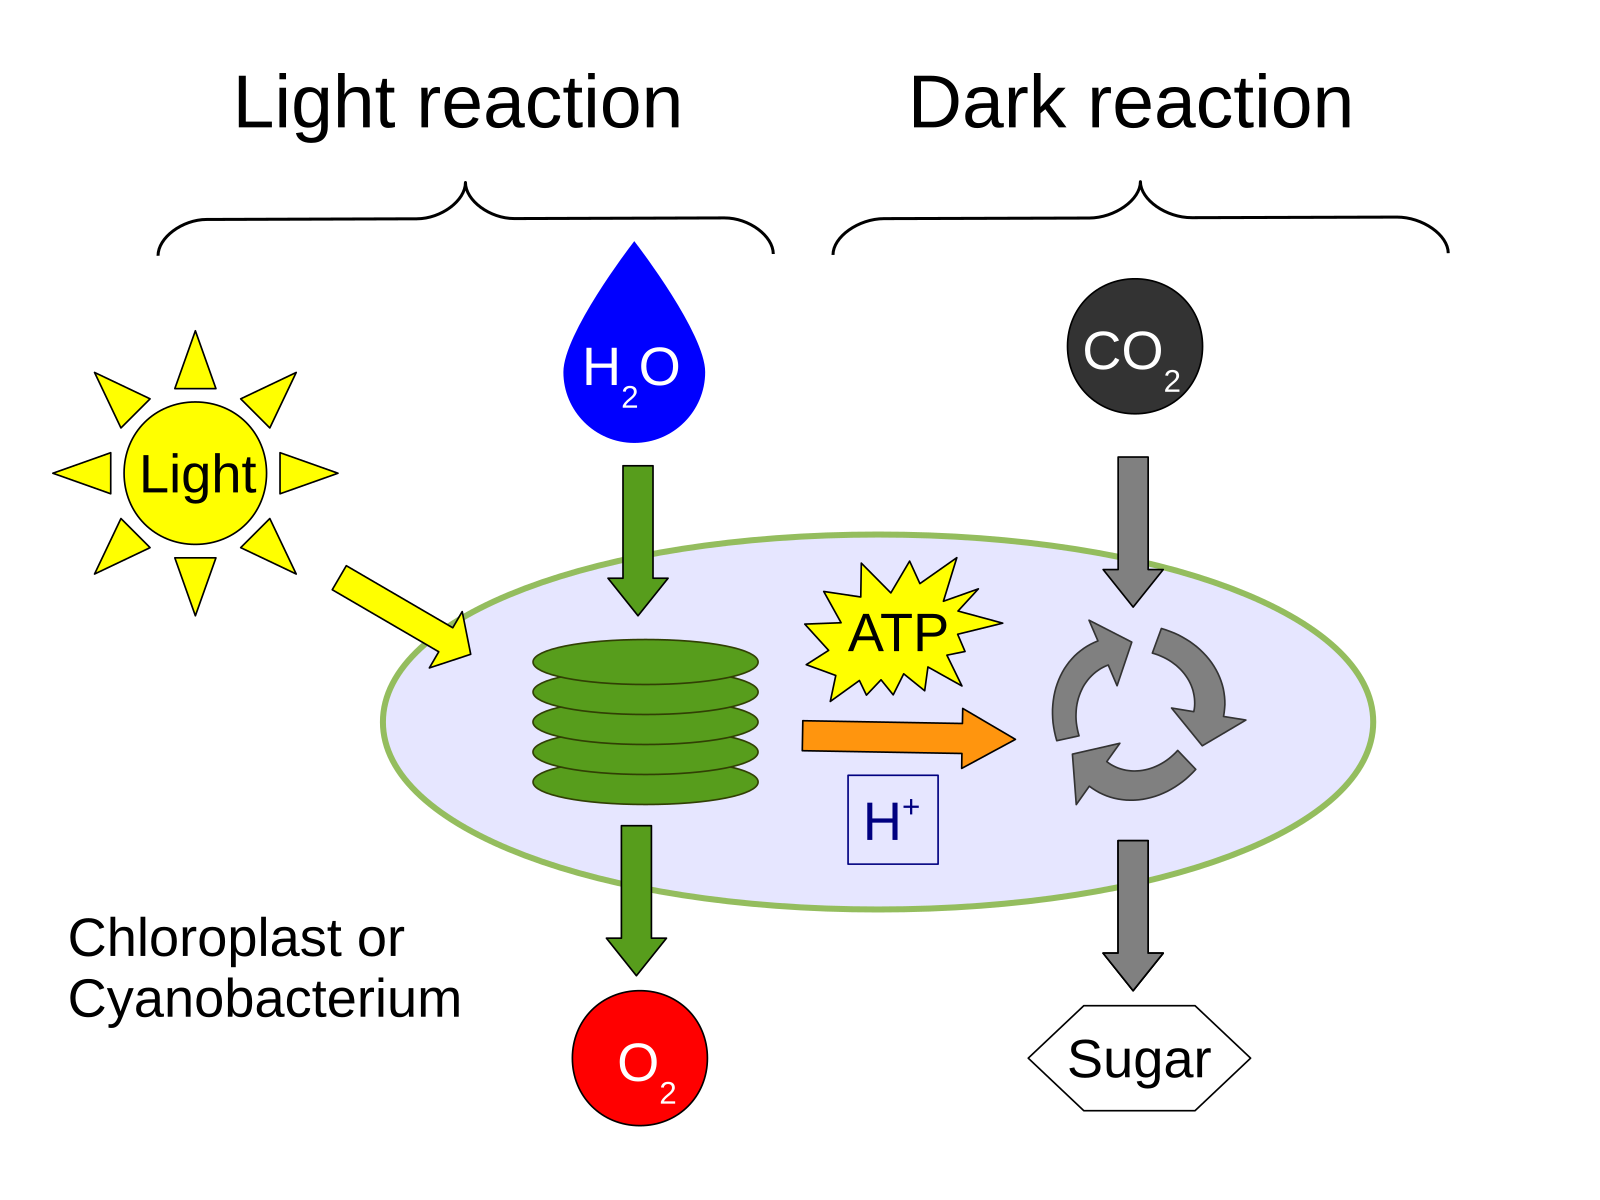 Aikavaellus photosynthesis oxygen producing photosynthesis in light reaction water is broken down and light energy is converted to the chemical energy in dark reaction sugars are ccuart Gallery